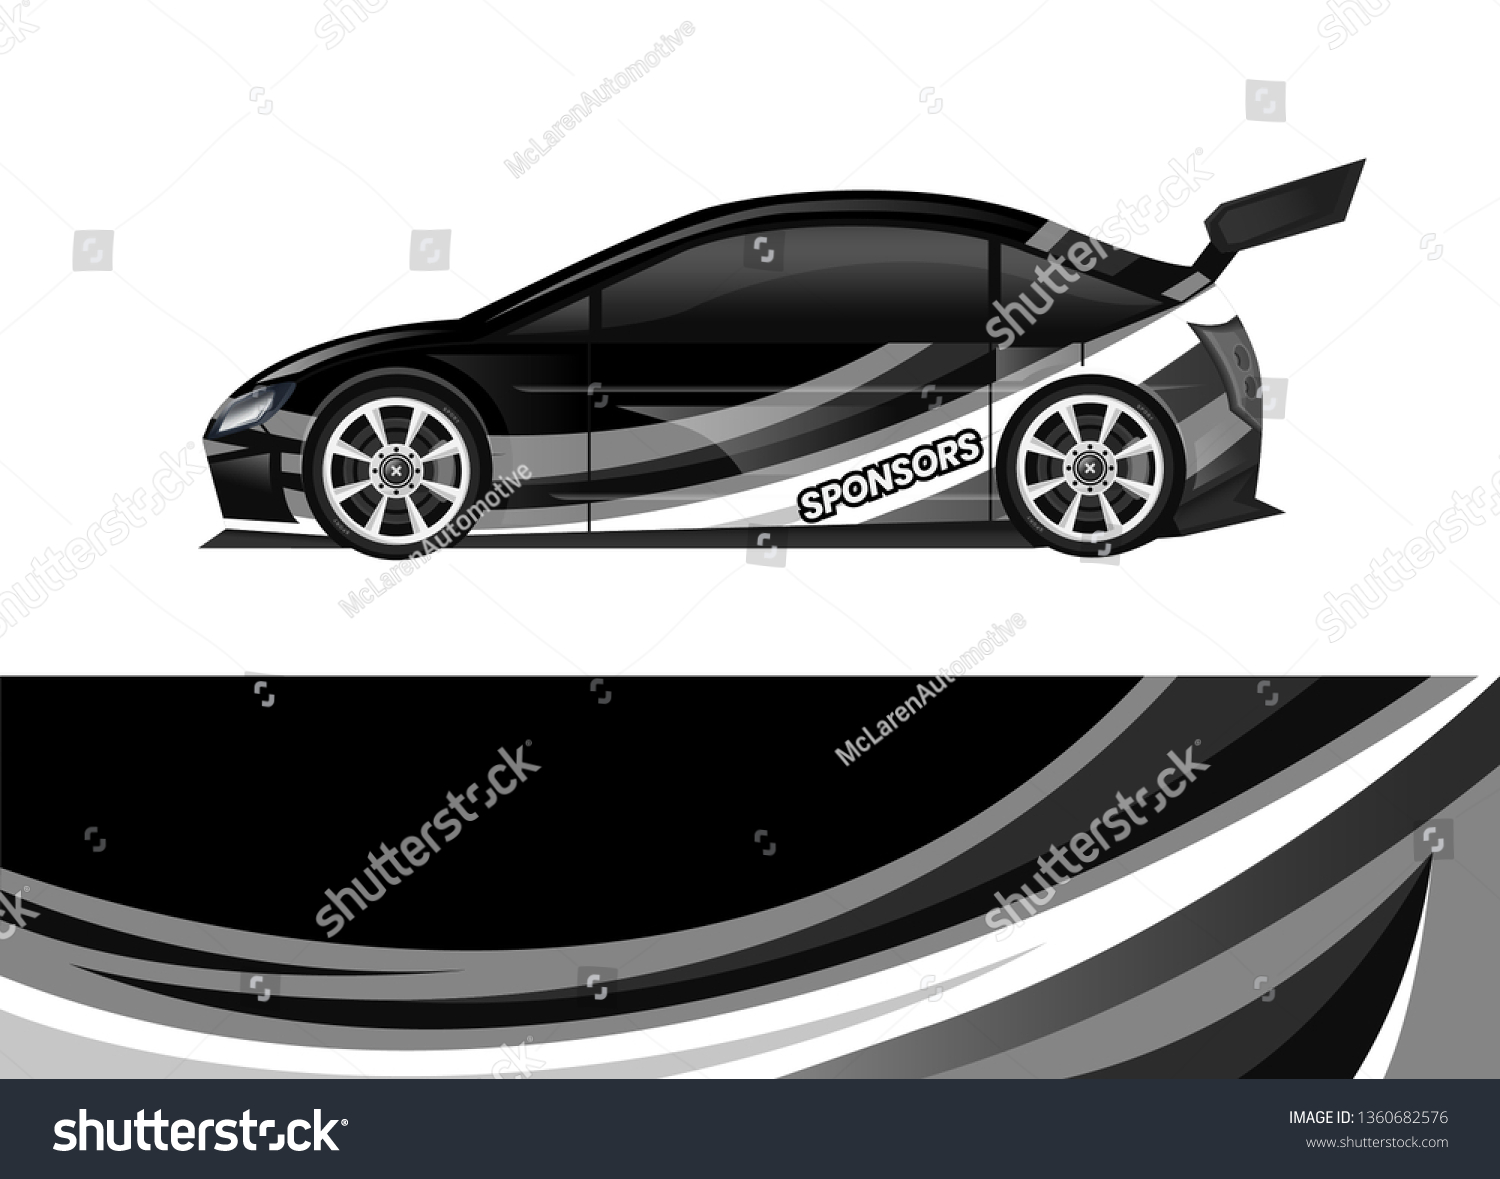 Car decal wrap design template vector illustration background abstract stripe racing sport graphic designs kit